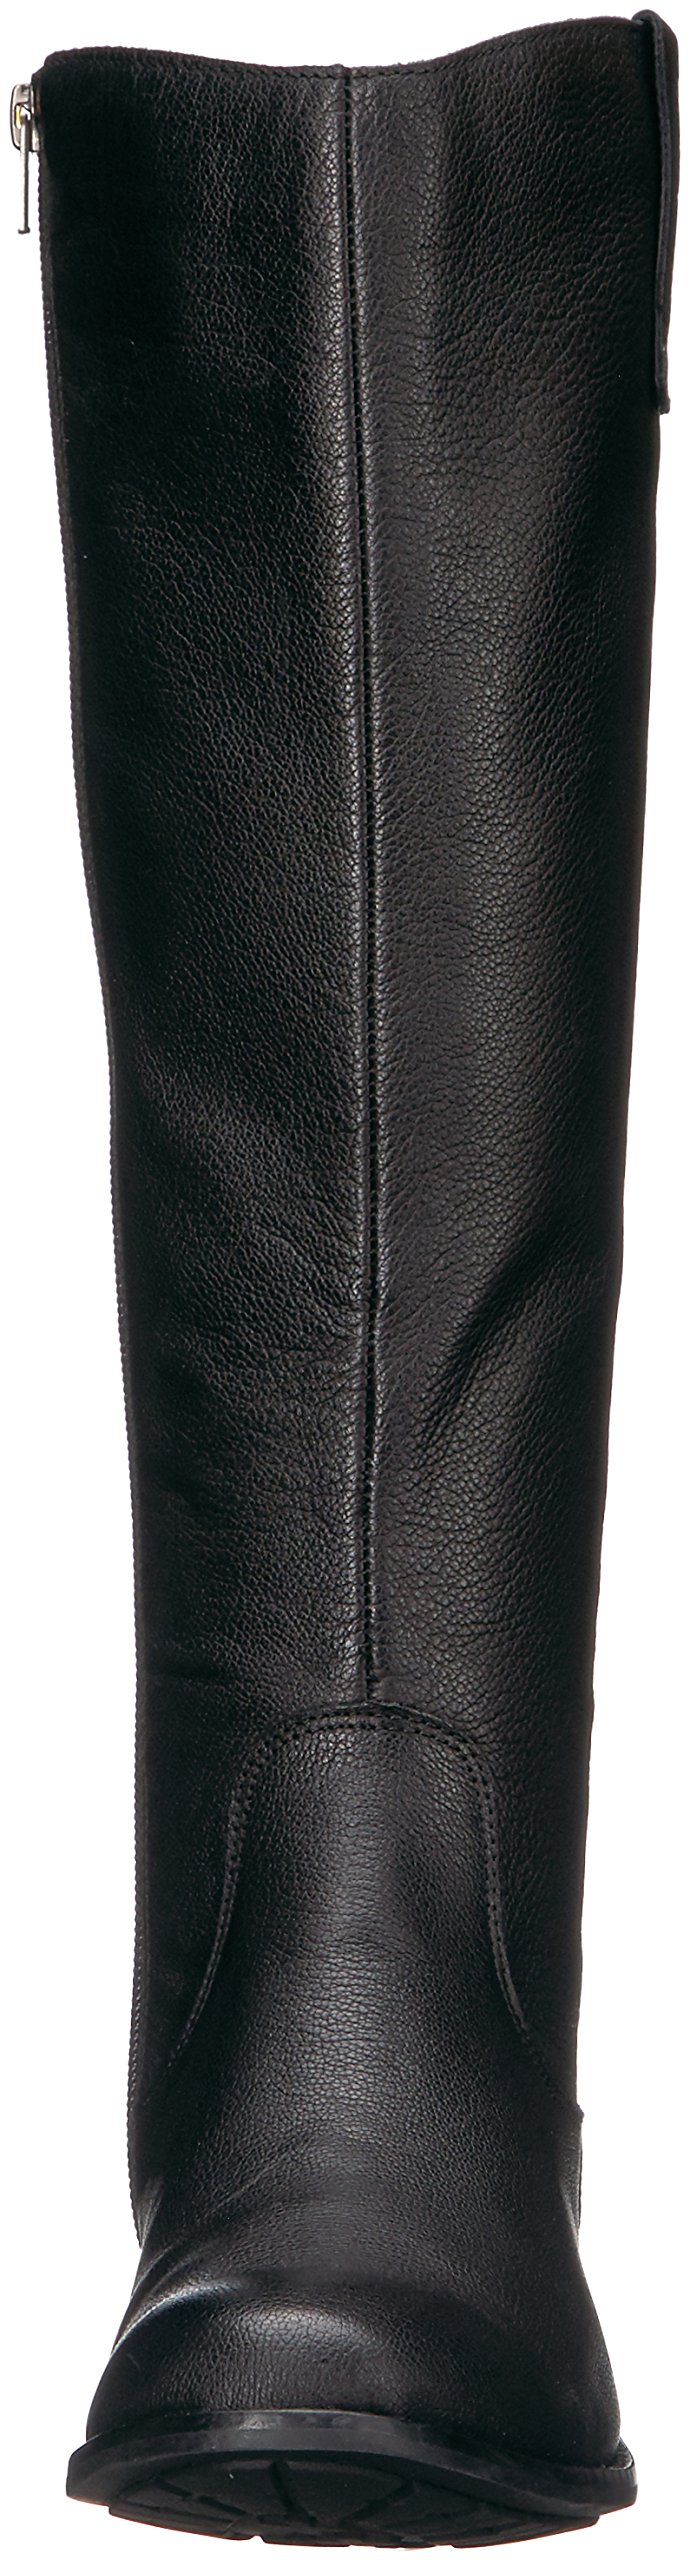 206 Collective Women's Whidbey Riding Boot, Black, 6.5 B US by 206 Collective (Image #4)